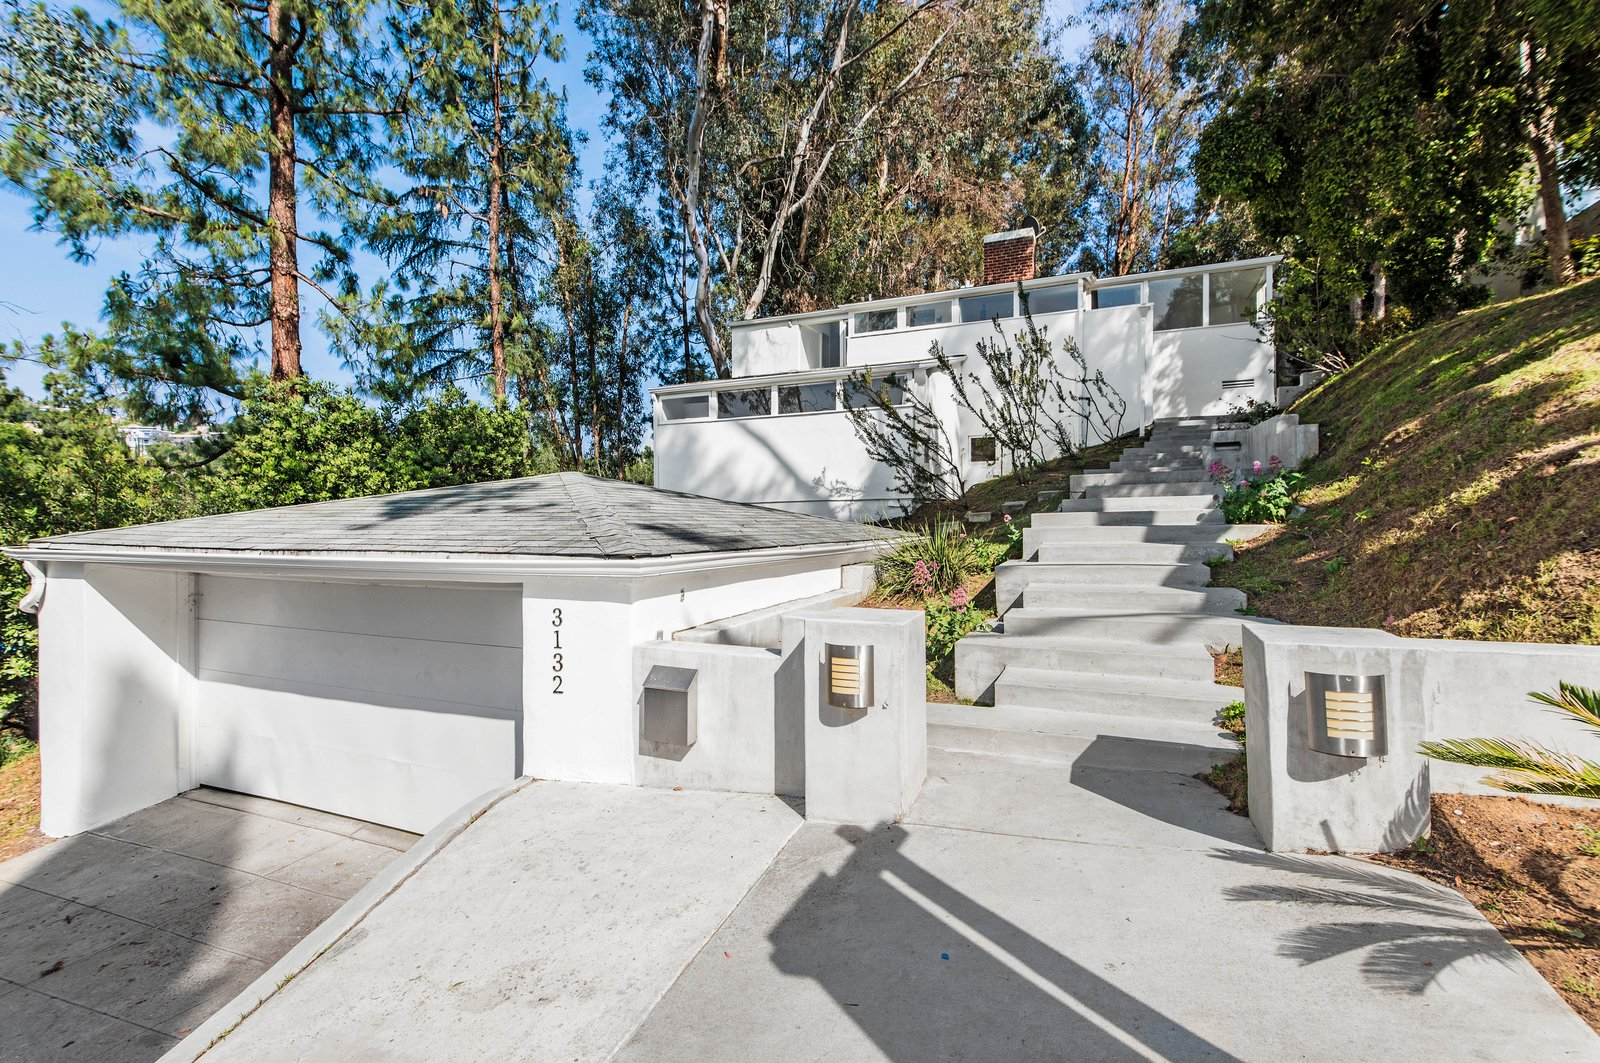 Photo 1 of 9 in The Historic Margaret and Harry Hay House in the Hollywood Hills Lists For $1.25M